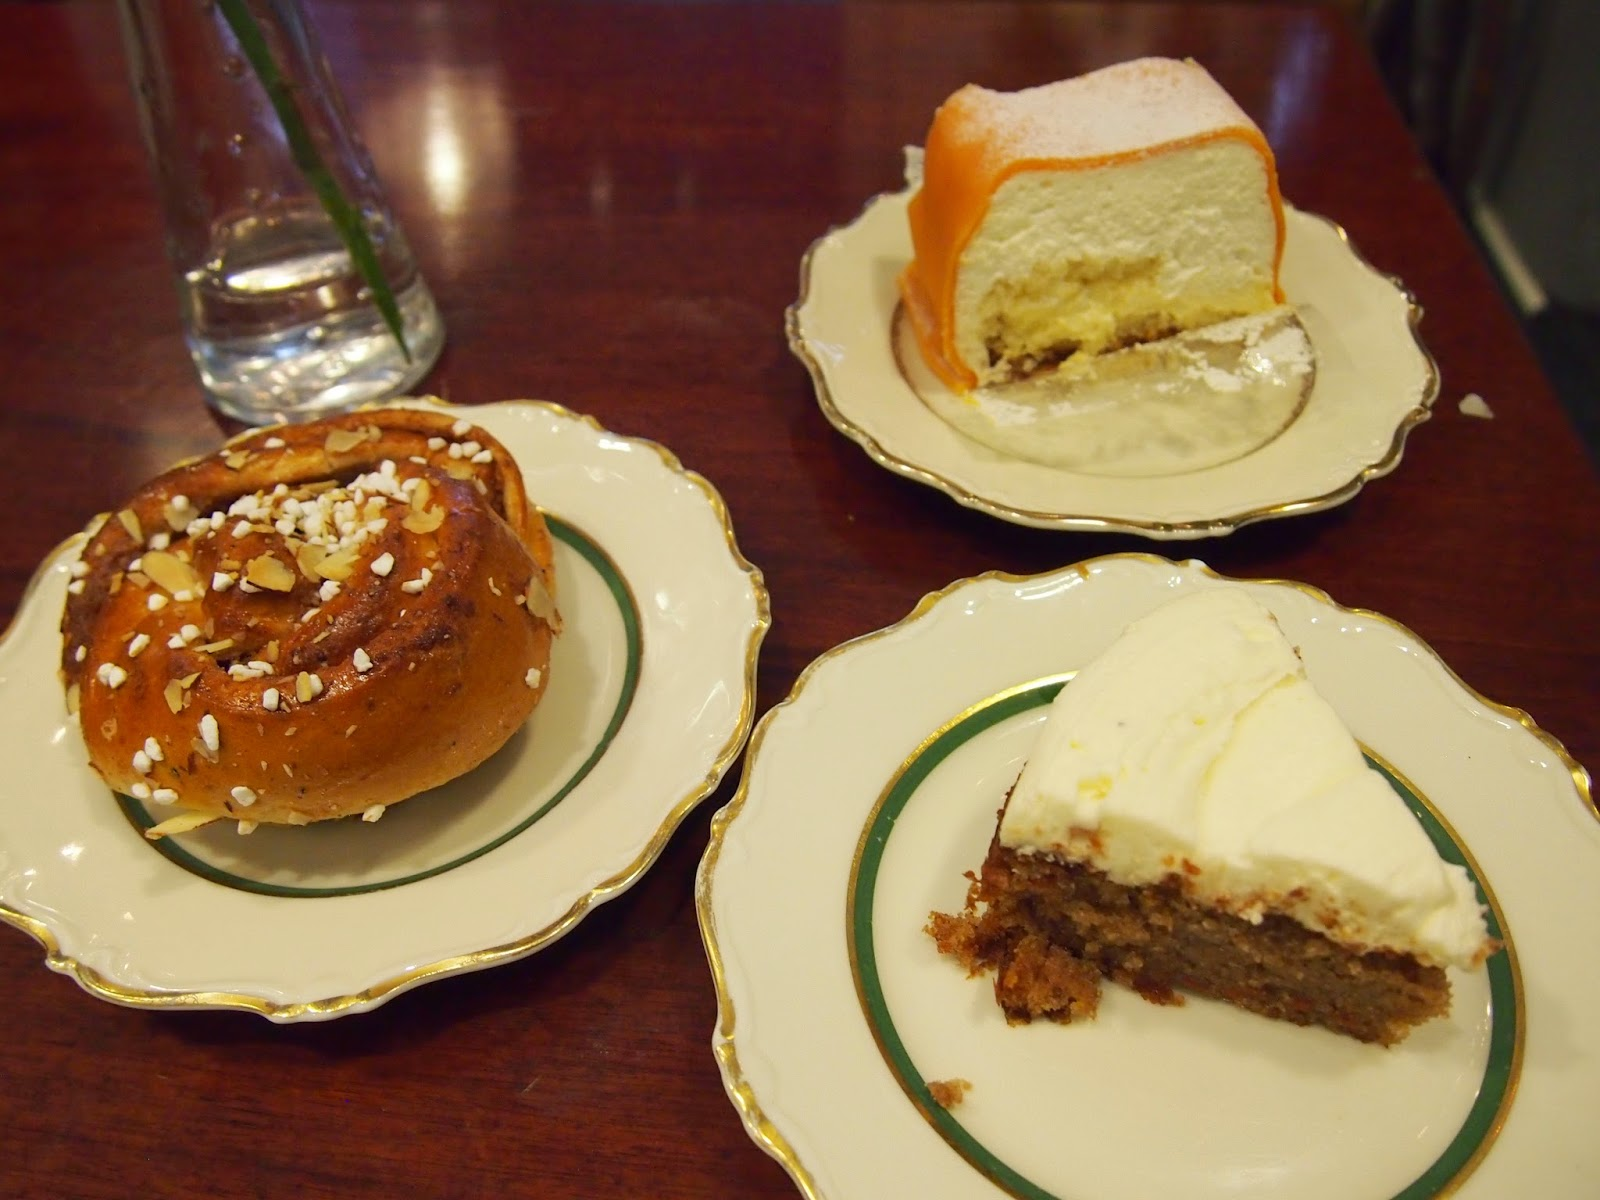 princess cake, cinnamon bun, and carrot cake from Ambrosia cafe in Malmo